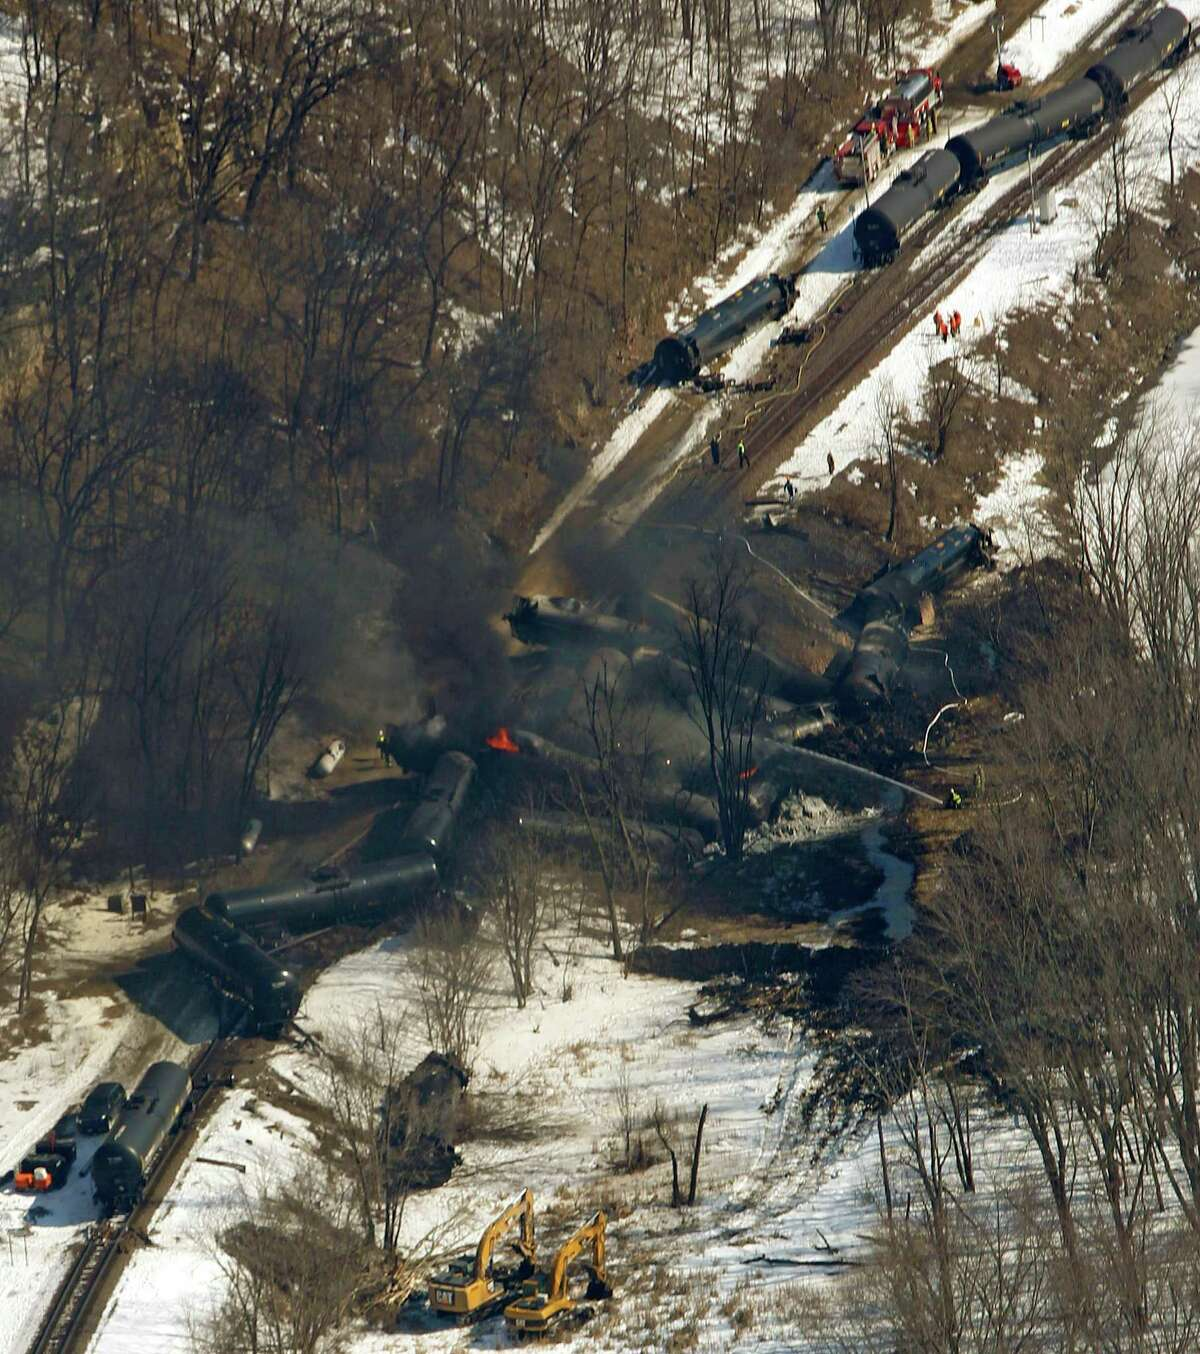 Railcars continue to burn at the scene of a freight train derailment south of Galena, Ill., on Friday, March 6, 2015. No injuries were reported, but the accident was the latest in a series of failures for the safer tank-car model that has led some people calling for even tougher requirements. (AP Photo/Telegraph Herald, Mike Burley) MAGS OUT, TV OUT, MANDATORY CREDITRailcars continue to burn at the scene of a freight train derailment south of Galena, Ill., on Friday, March 6, 2015. No injuries were reported, but the accident was the latest in a series of failures for the safer tank-car model that has led some people calling for even tougher requirements. (AP Photo/Telegraph Herald, Mike Burley) MAGS OUT, TV OUT, MANDATORY CREDIT